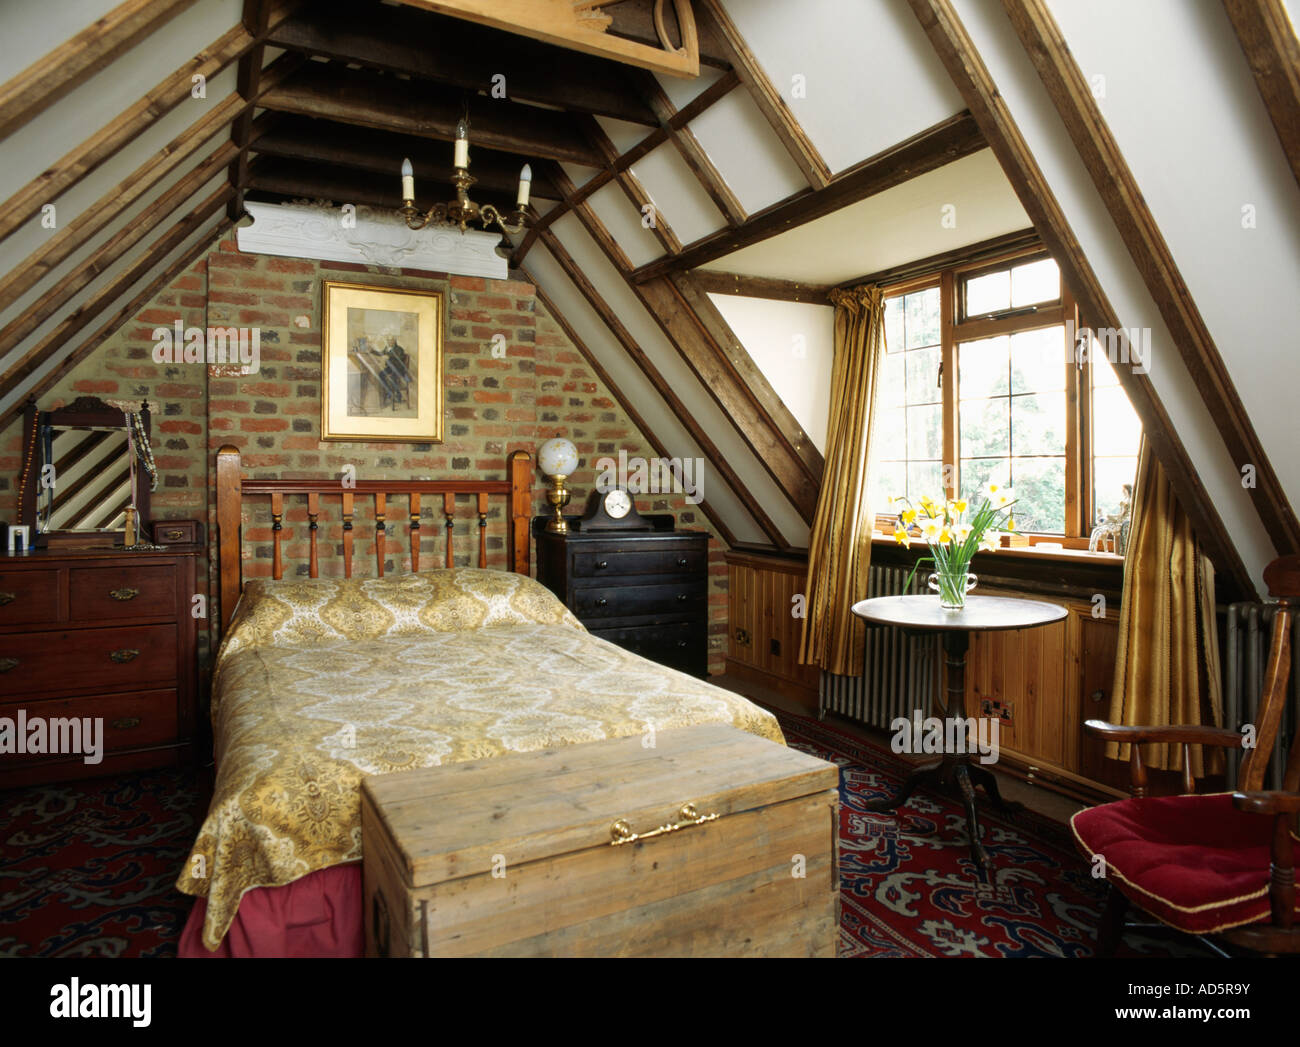 Wooden chest below bed in attic bedroom with brick wall for Wooden attic box bed